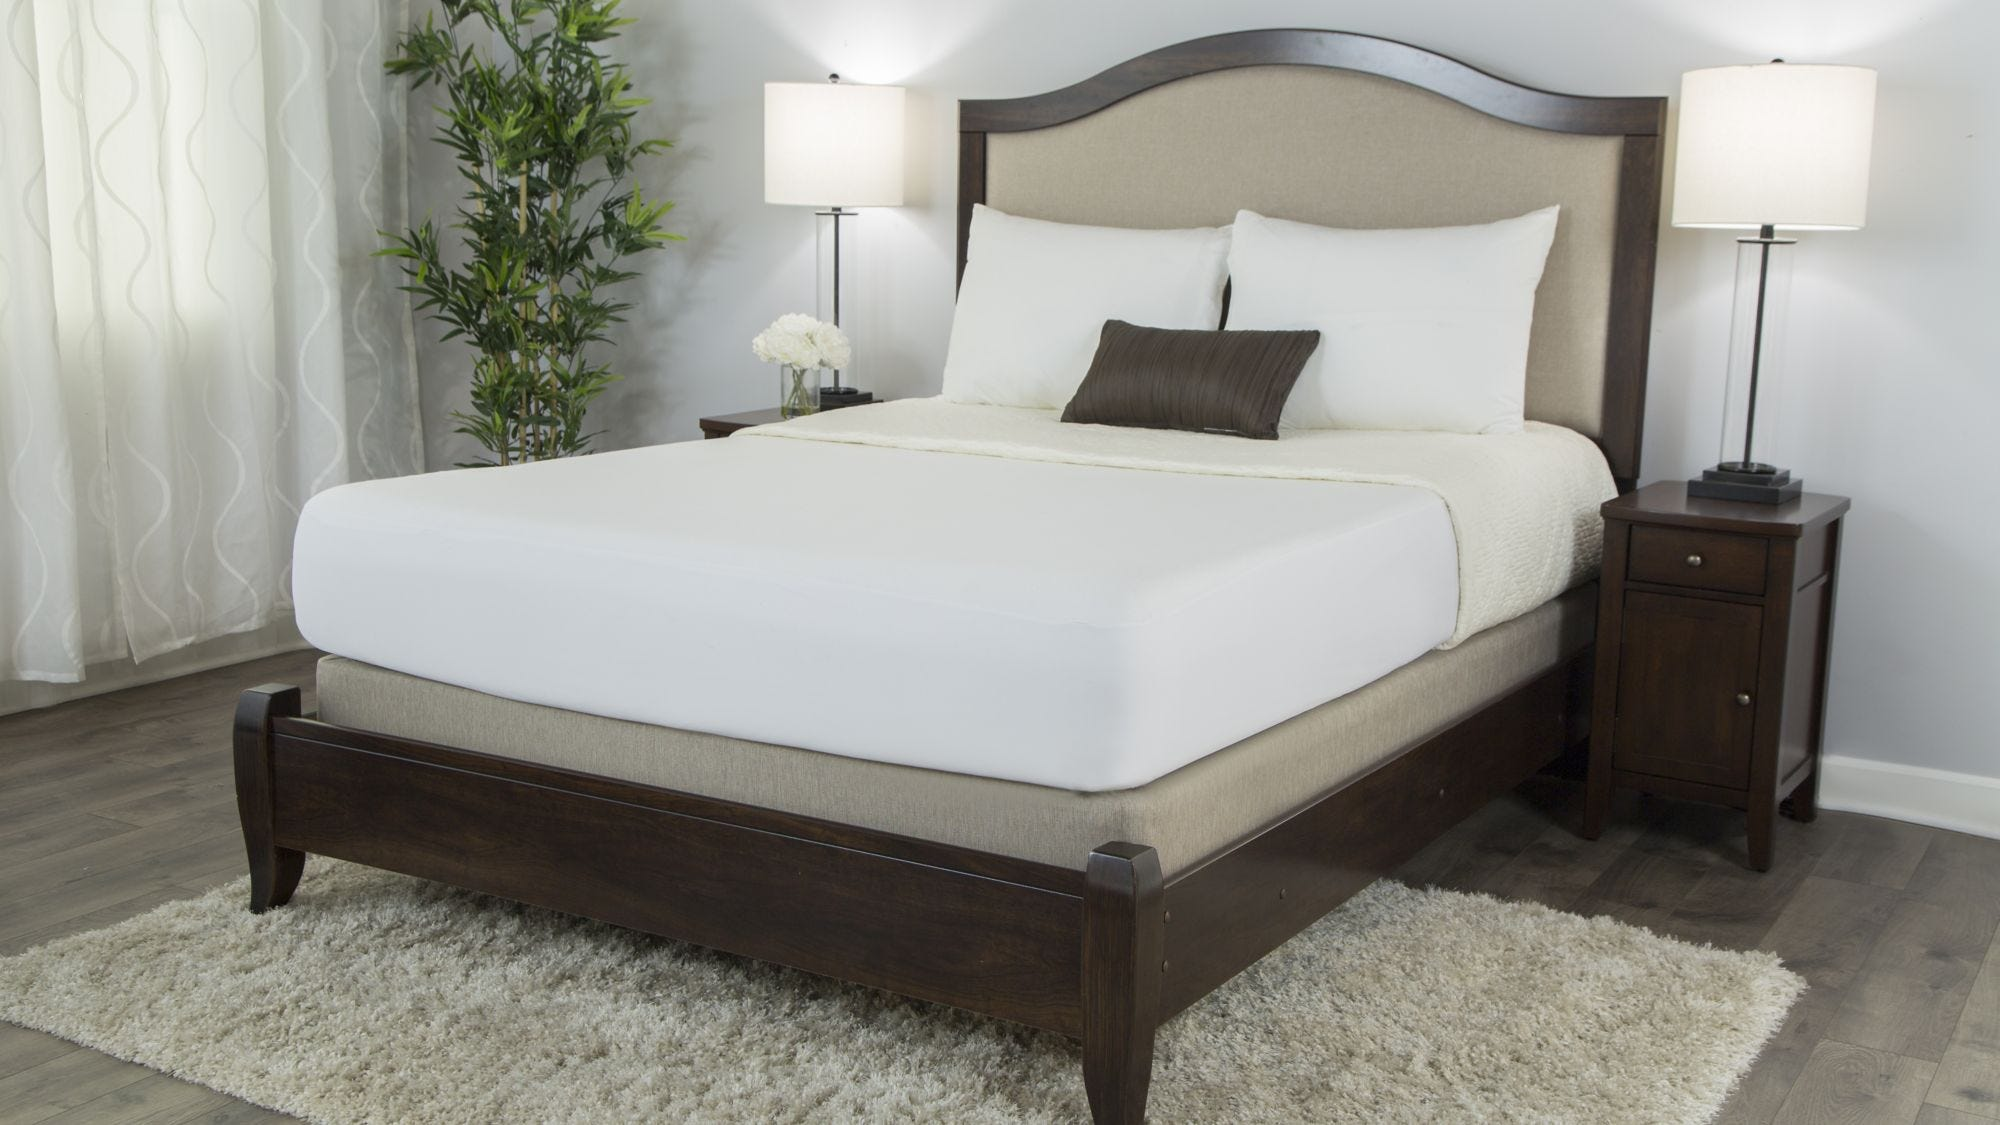 single using in with number ideas prices comfortable bed base beds motorized sale pedic mattress sleep cal natural tips adjustable tempurpedic size review frames o rize frame for science terrific your dual and table split king cheap best tempur bedroom latex shipshape options